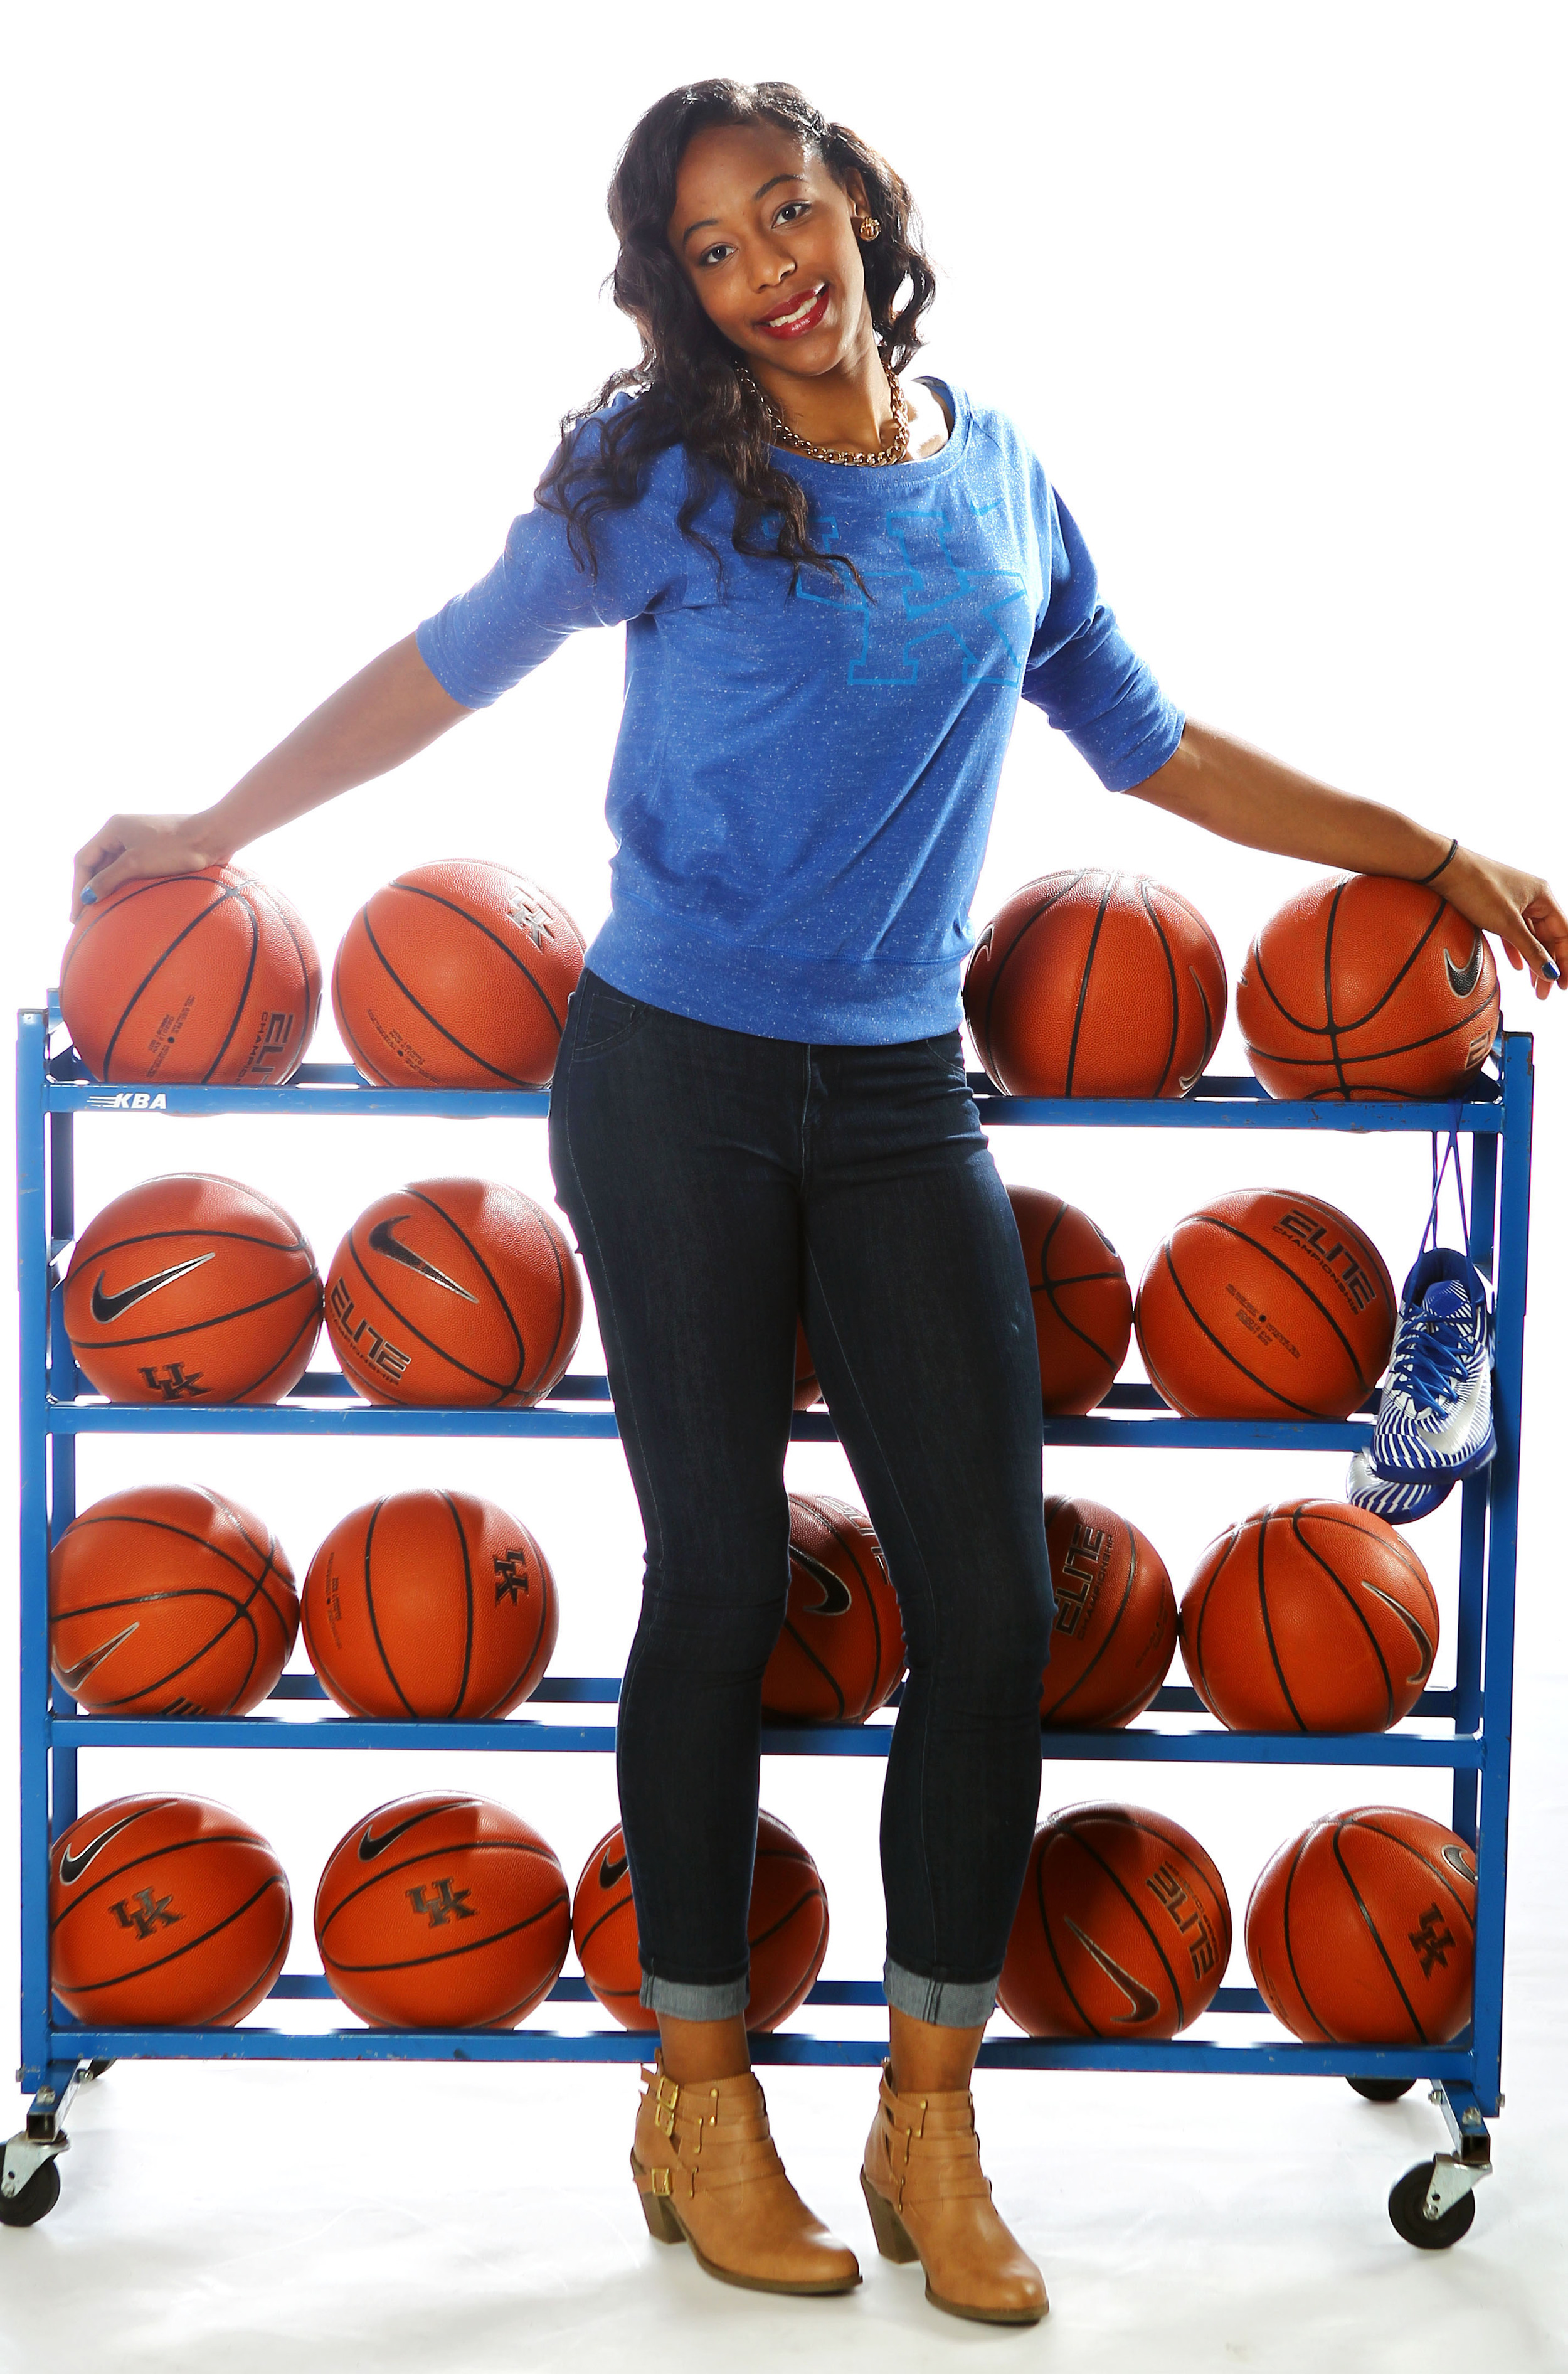 UK_wbball_outfits_320.jpg